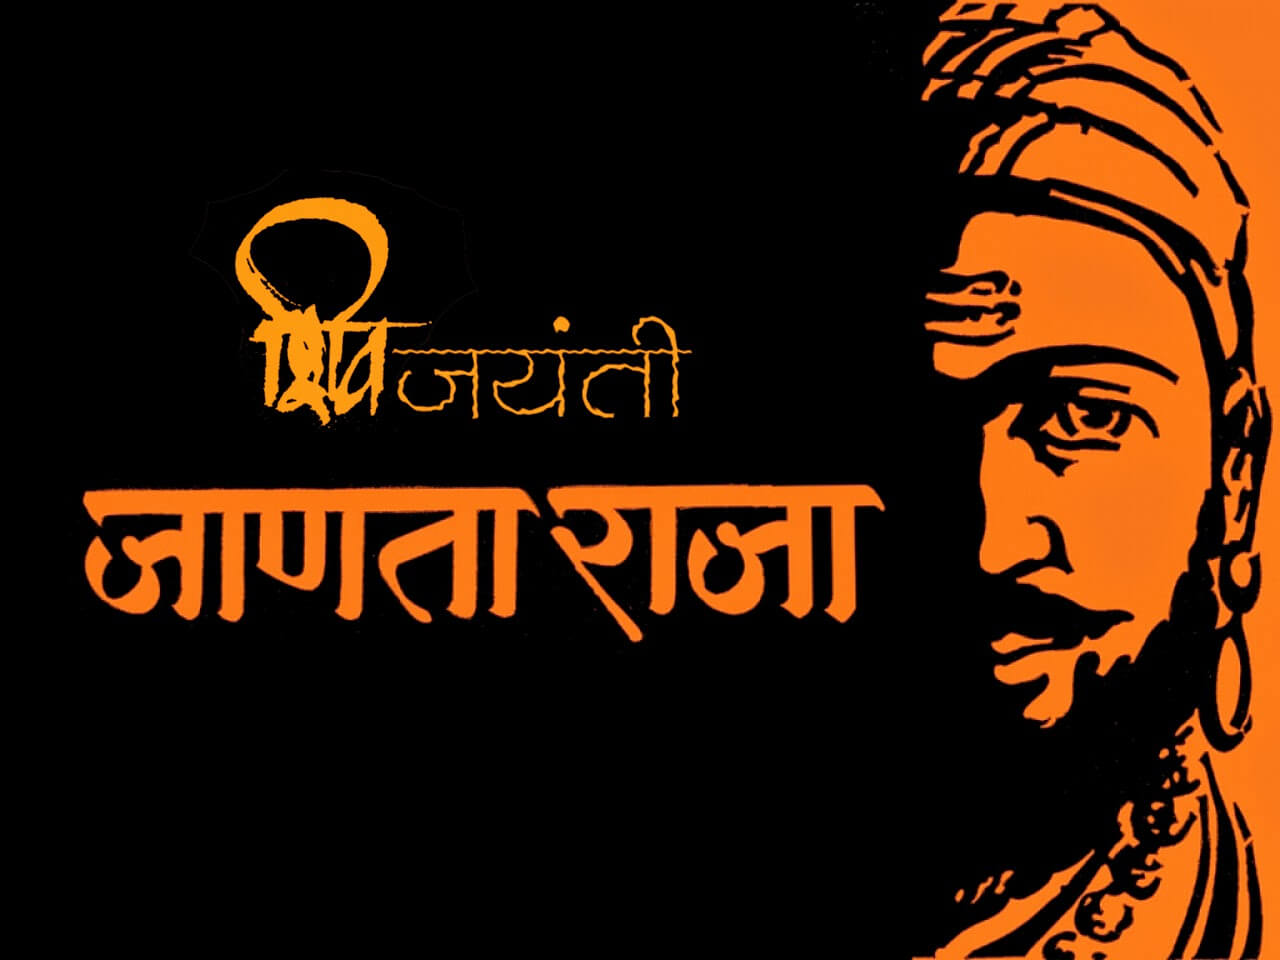 Hd wallpaper shivaji maharaj - Shivaji Jayanti Wallpaper